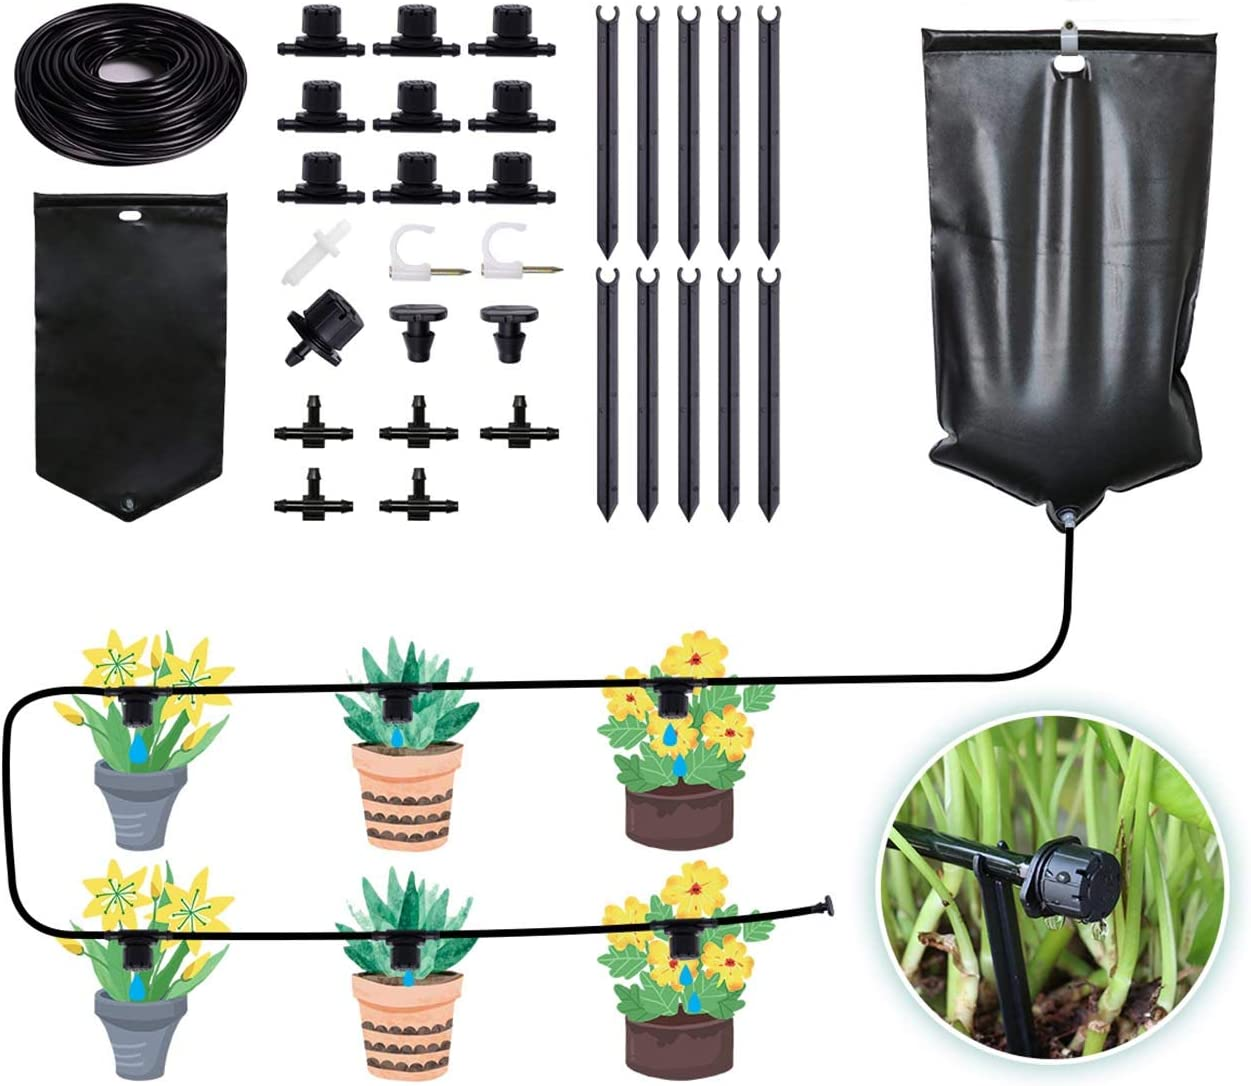 Drip Irrigation System Automatic Max 52% Max 74% OFF OFF Watering wi Tree Garden